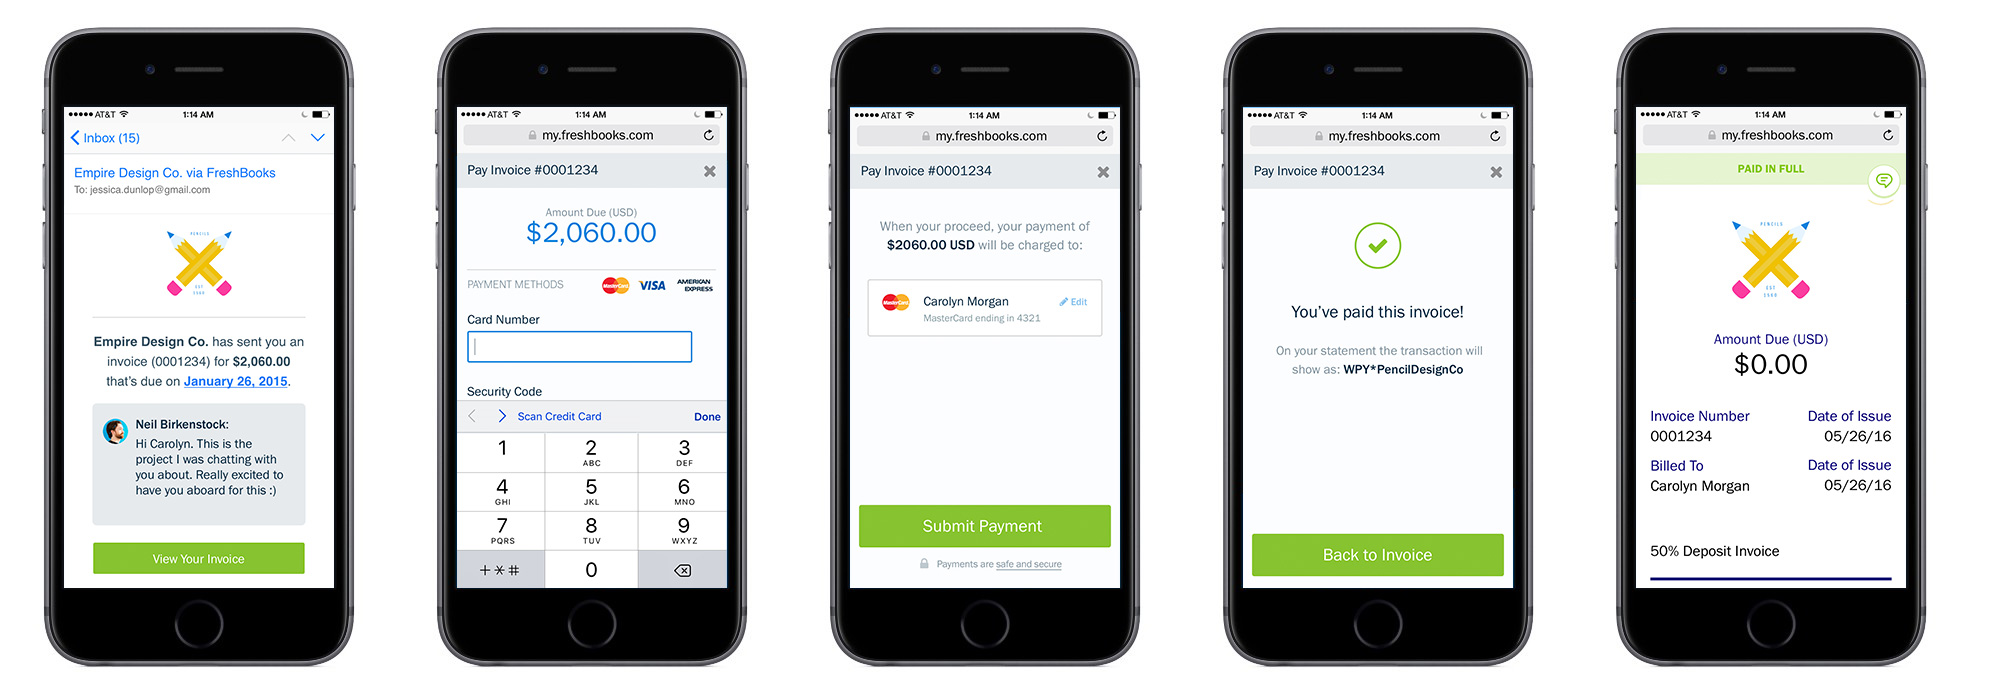 Mobile Payment Experience via Credit Card